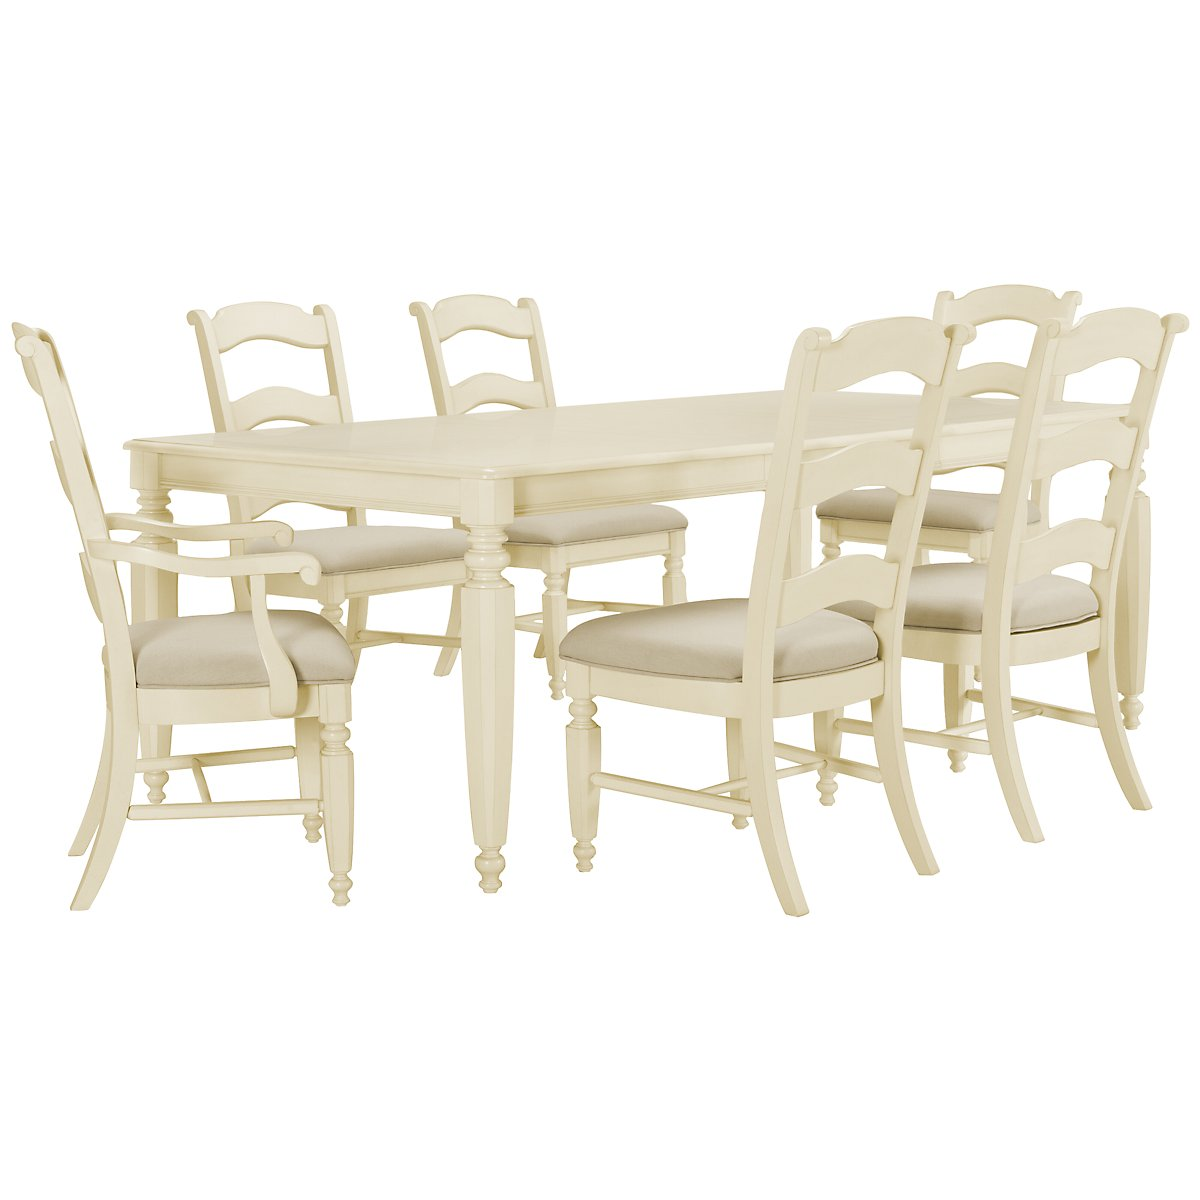 Claire White Rectangular Table & 4 Wood Chairs